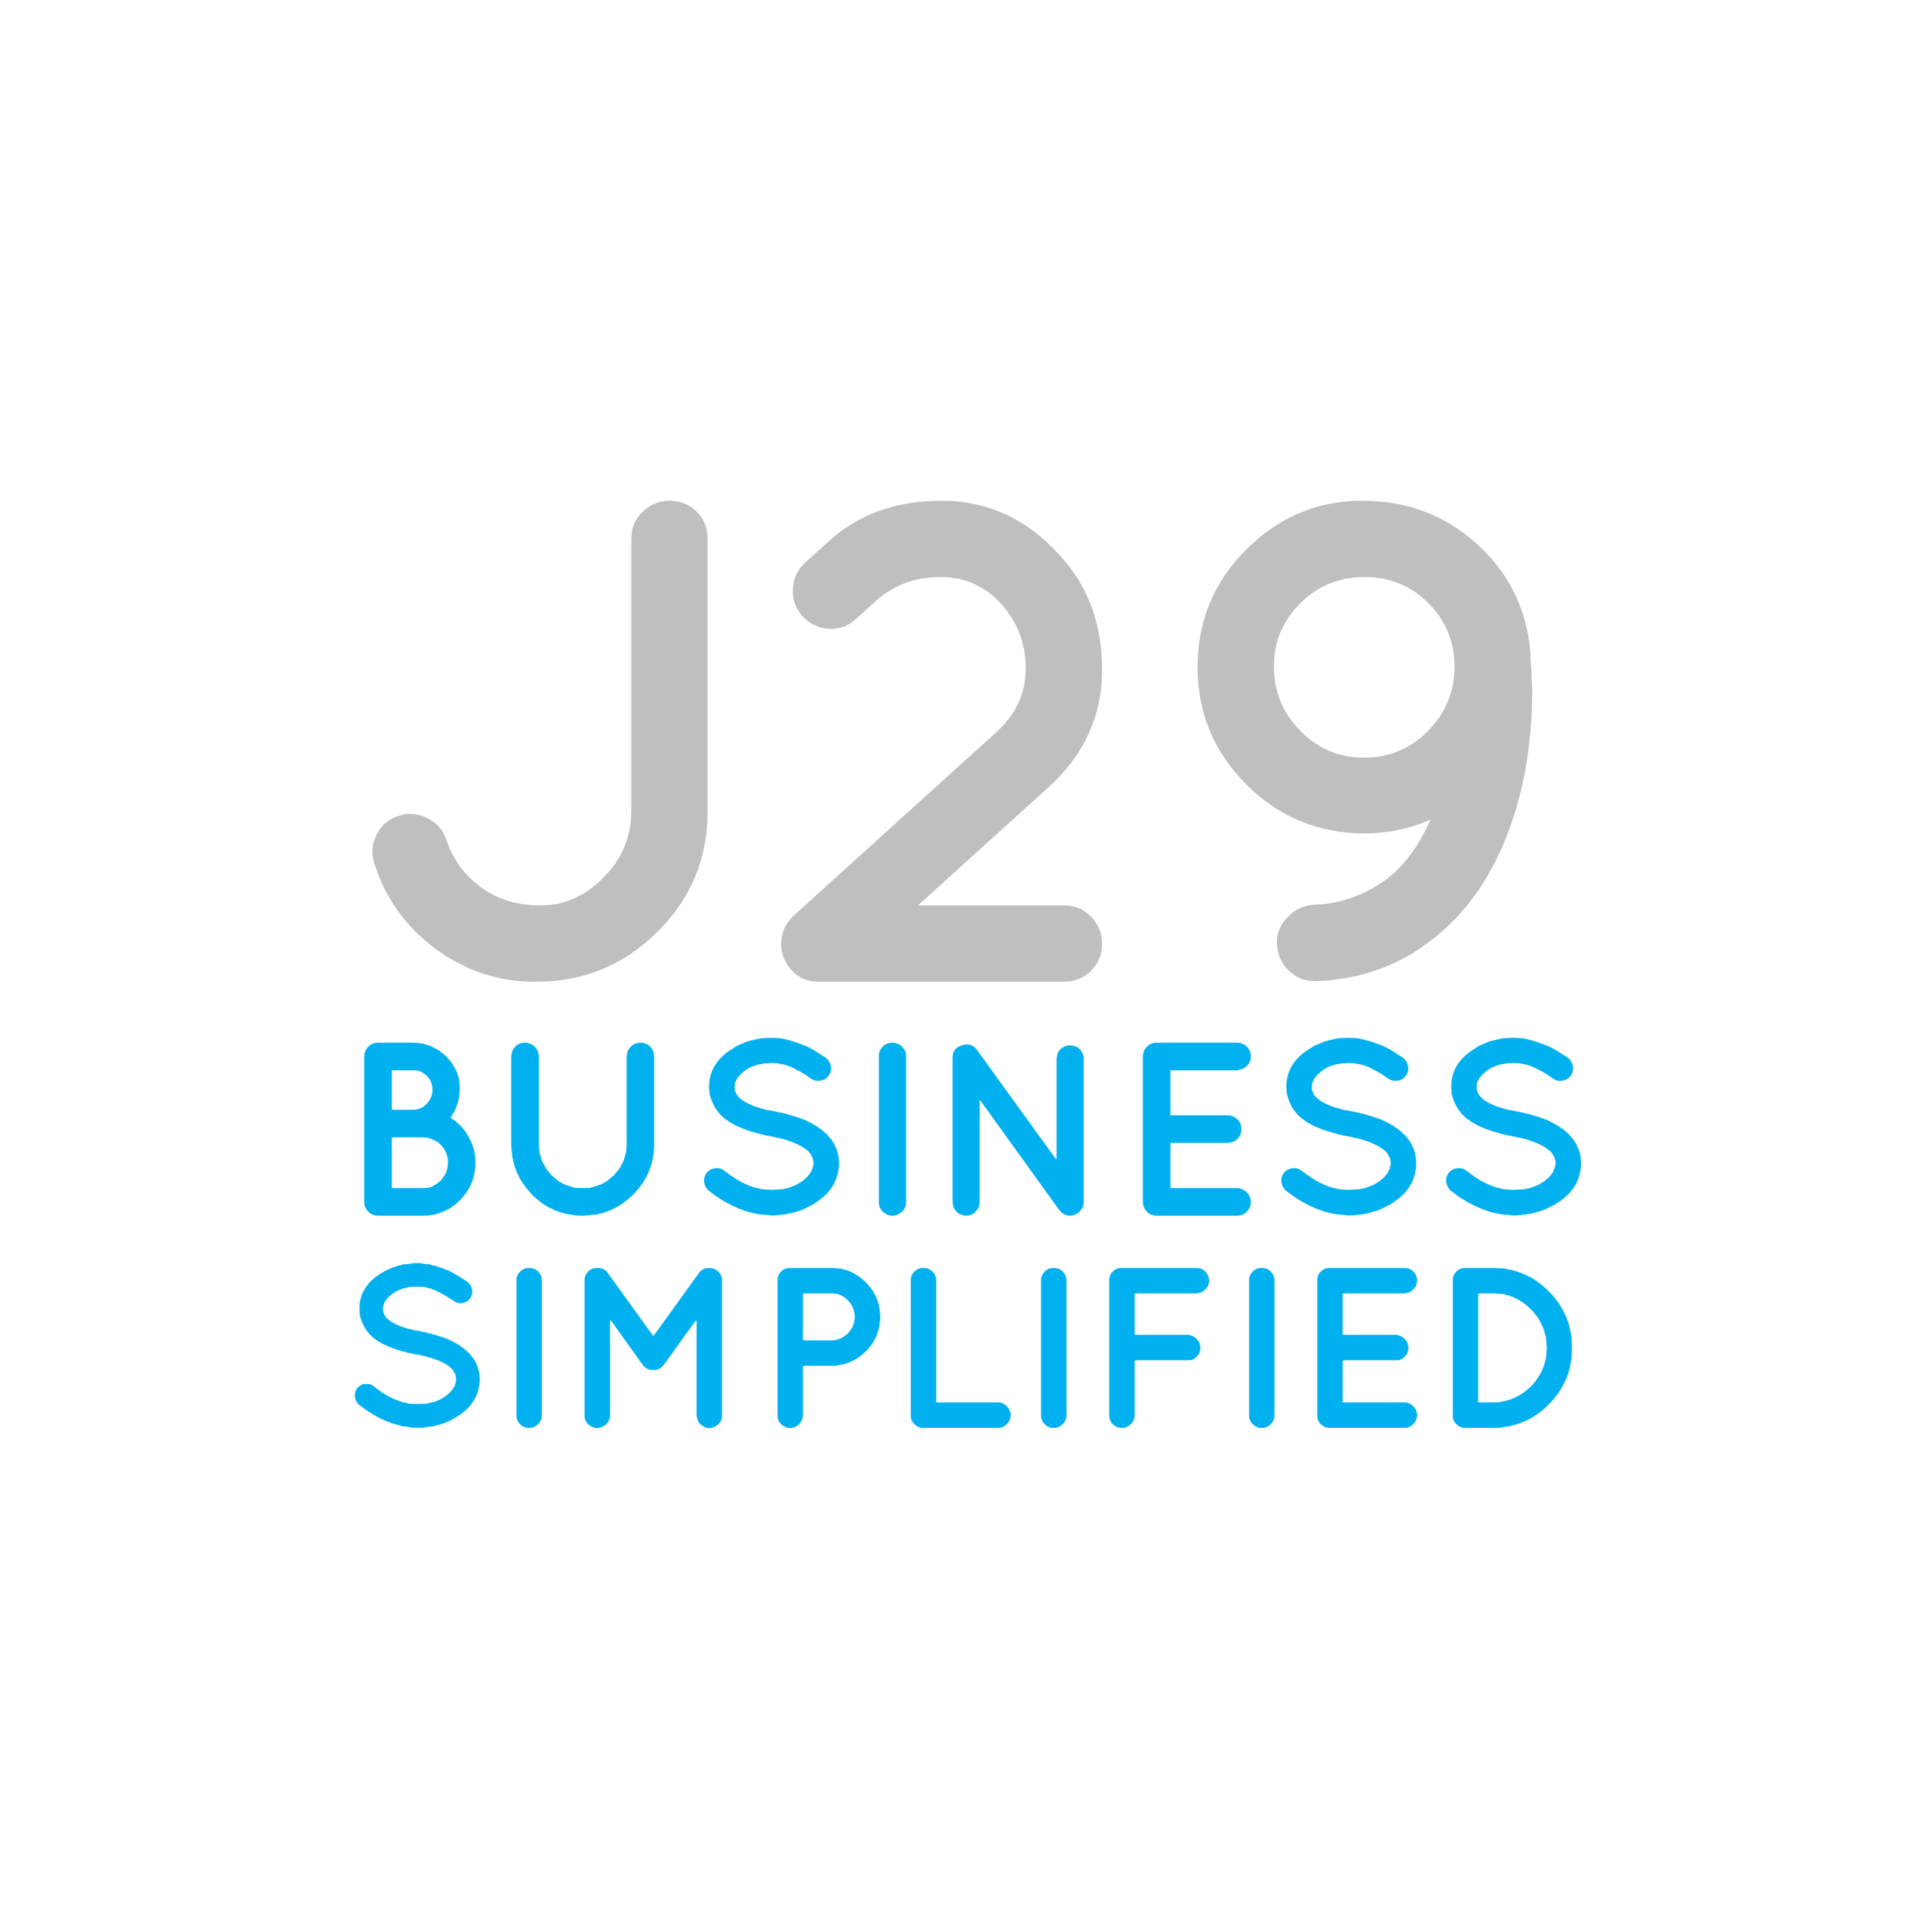 J29 Business Simplified